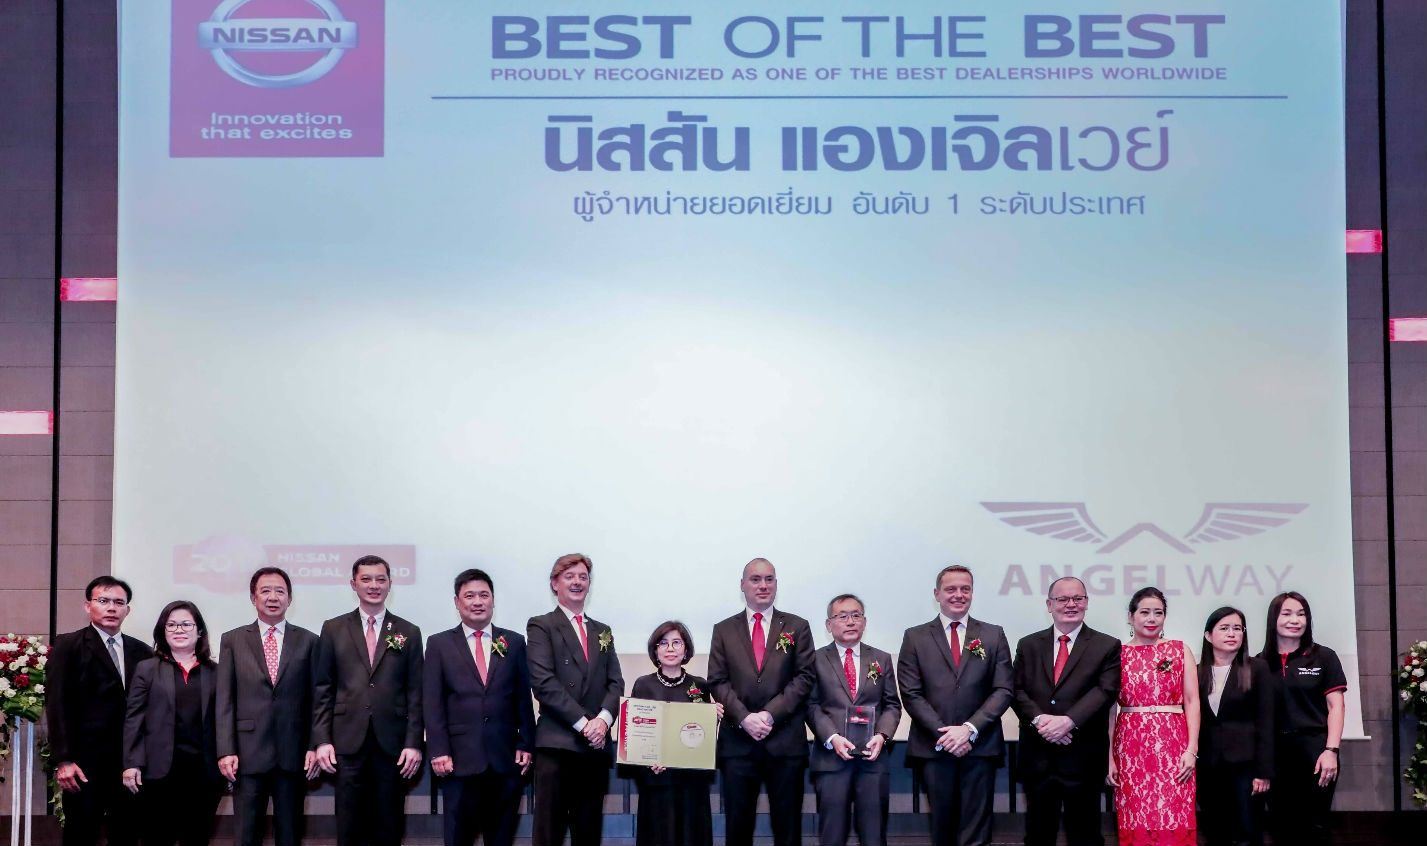 Angelway in Chaing Rai Wins the Nissan Motor (Thailand) 2017 Best of the Best Dealer Award